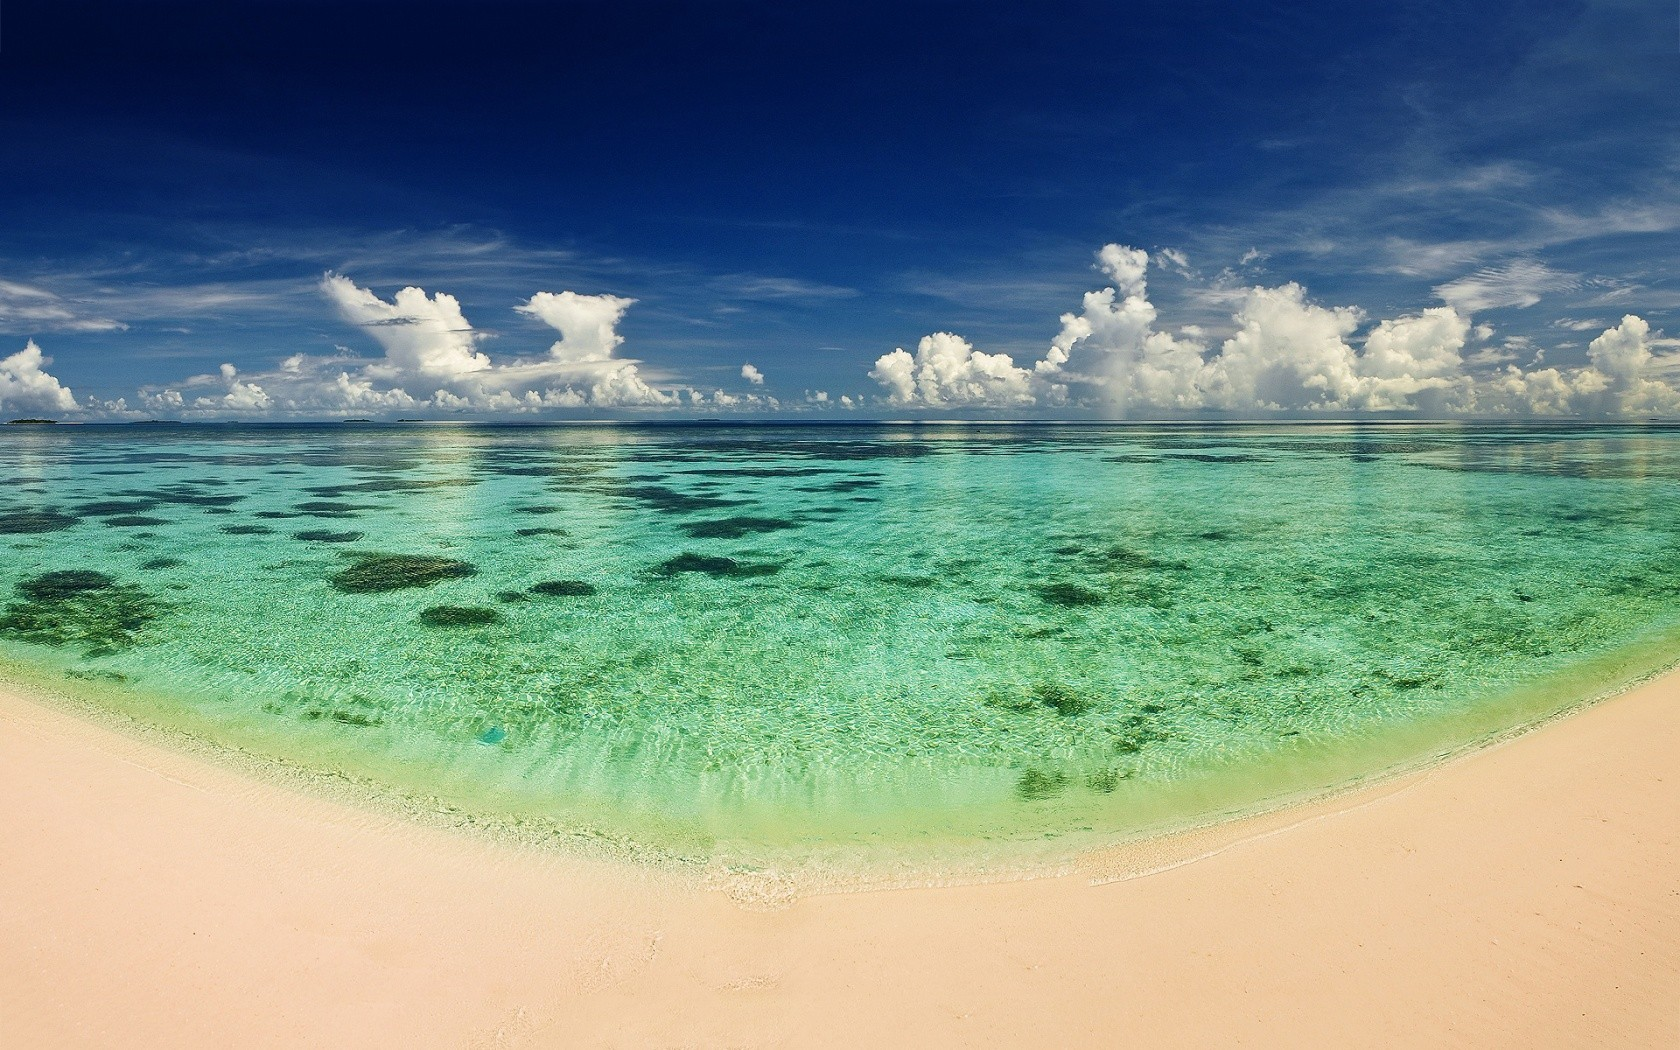 People Beach With Wallpapers Latest HQ Backgrounds HD wallpapers 1680x1050